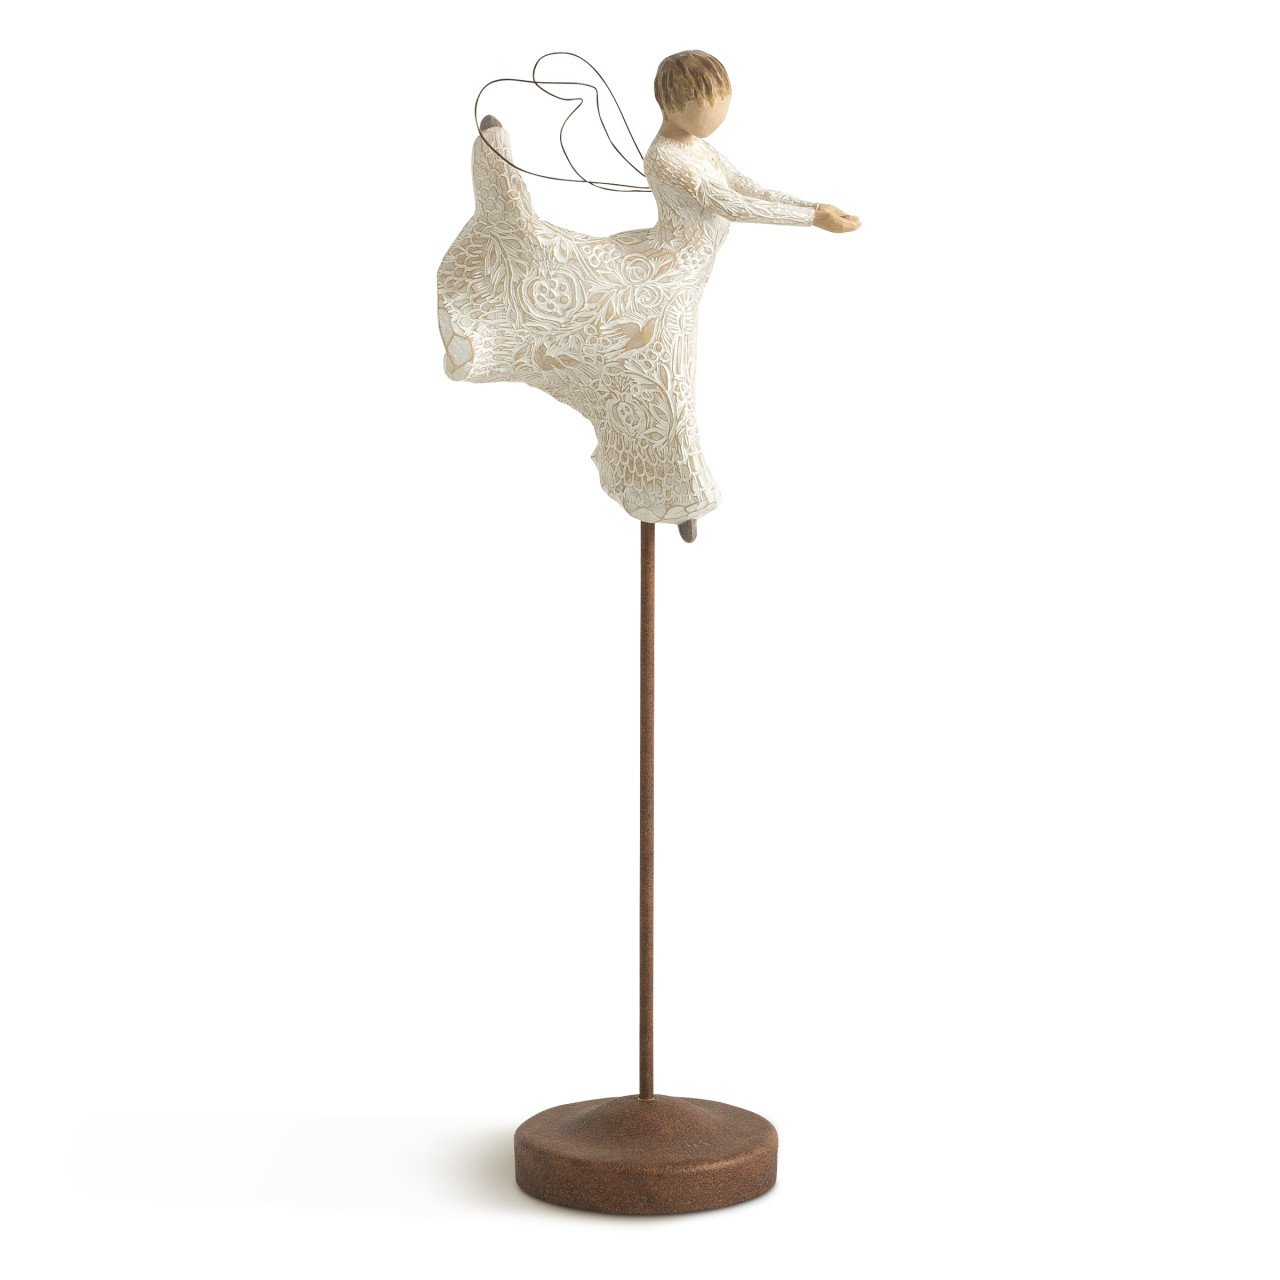 Willow Tree hand-painted sculpted angel, Dance of Life